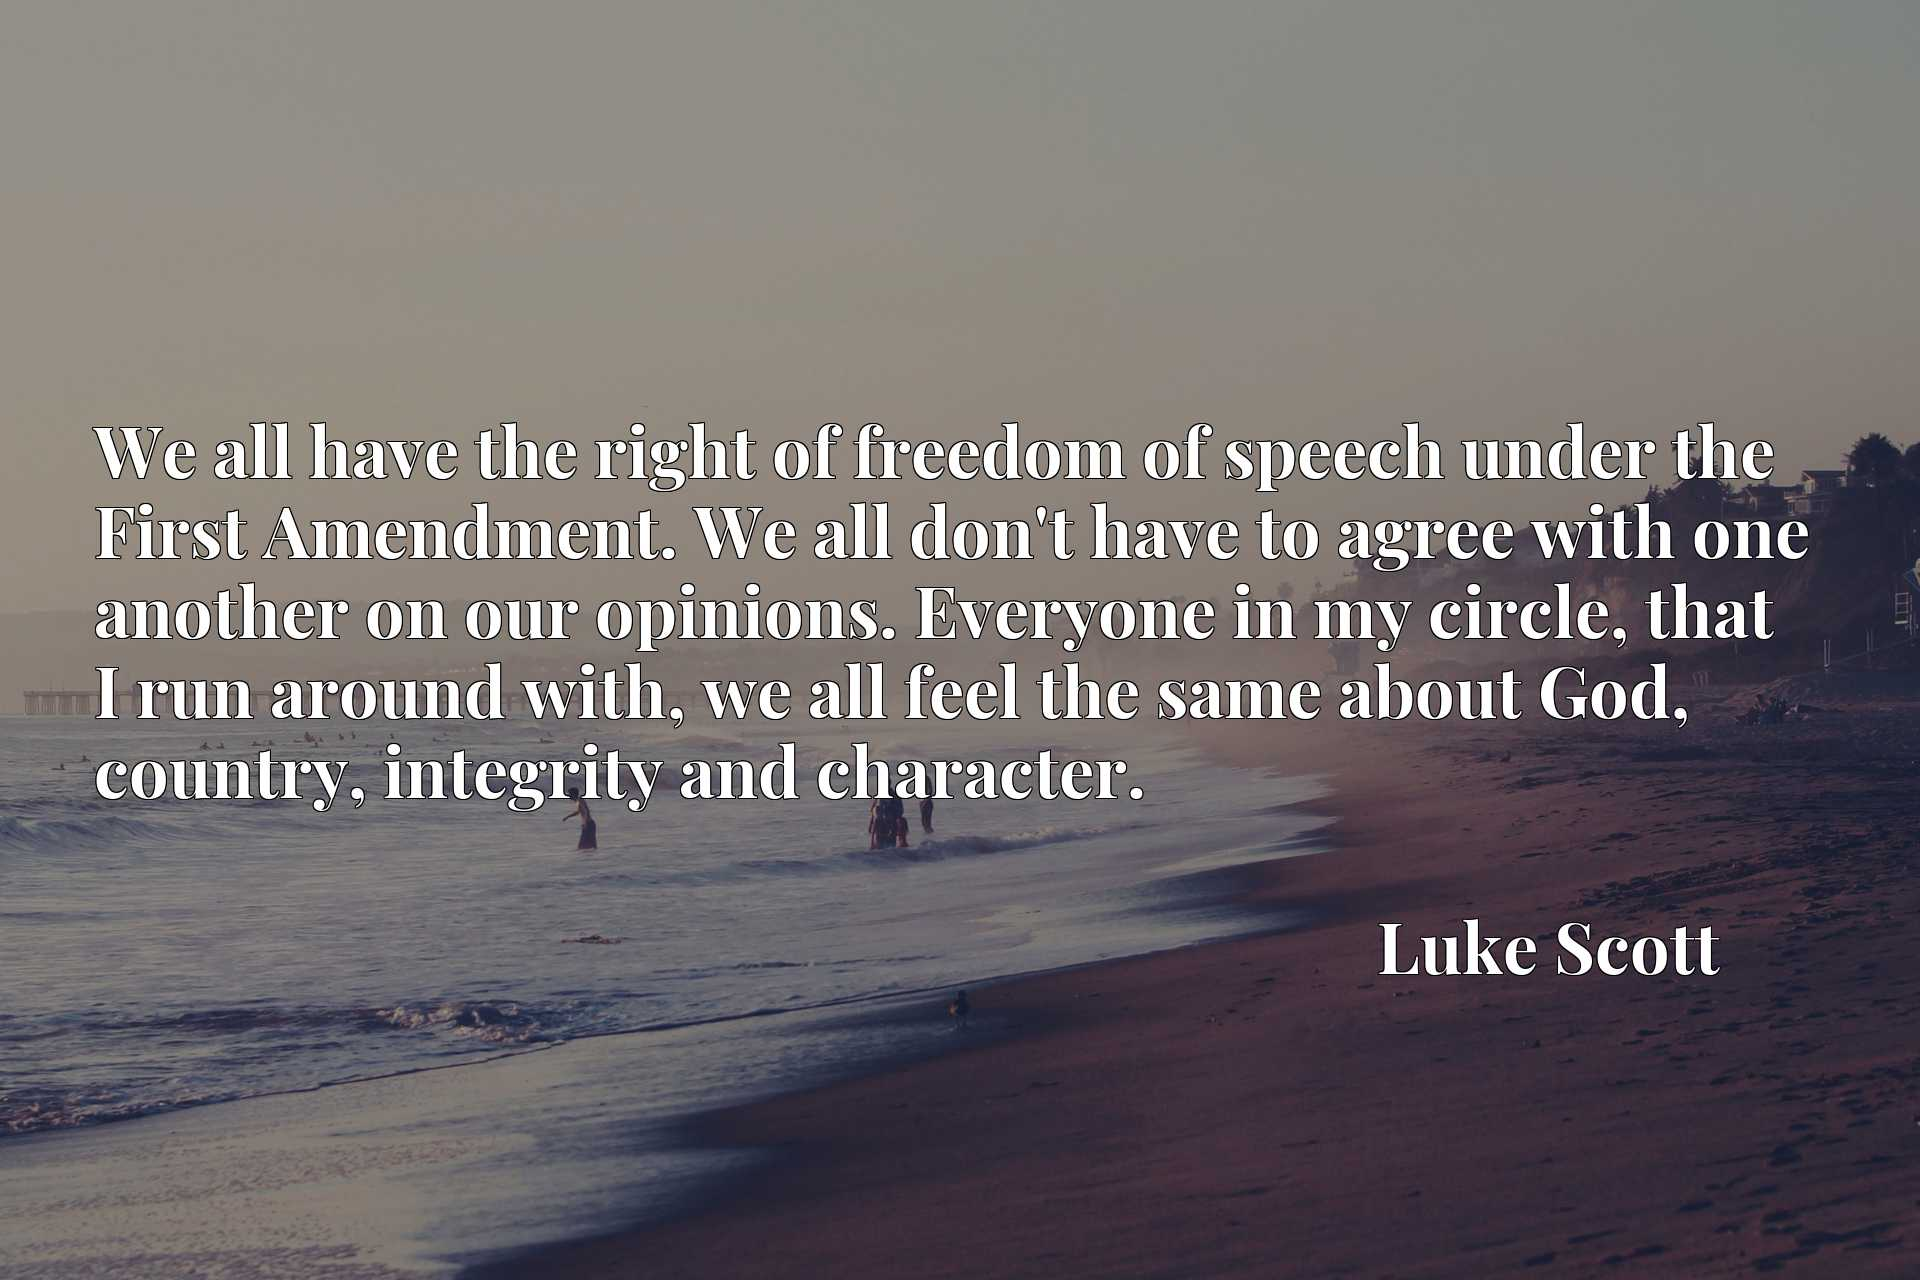 We all have the right of freedom of speech under the First Amendment. We all don't have to agree with one another on our opinions. Everyone in my circle, that I run around with, we all feel the same about God, country, integrity and character.